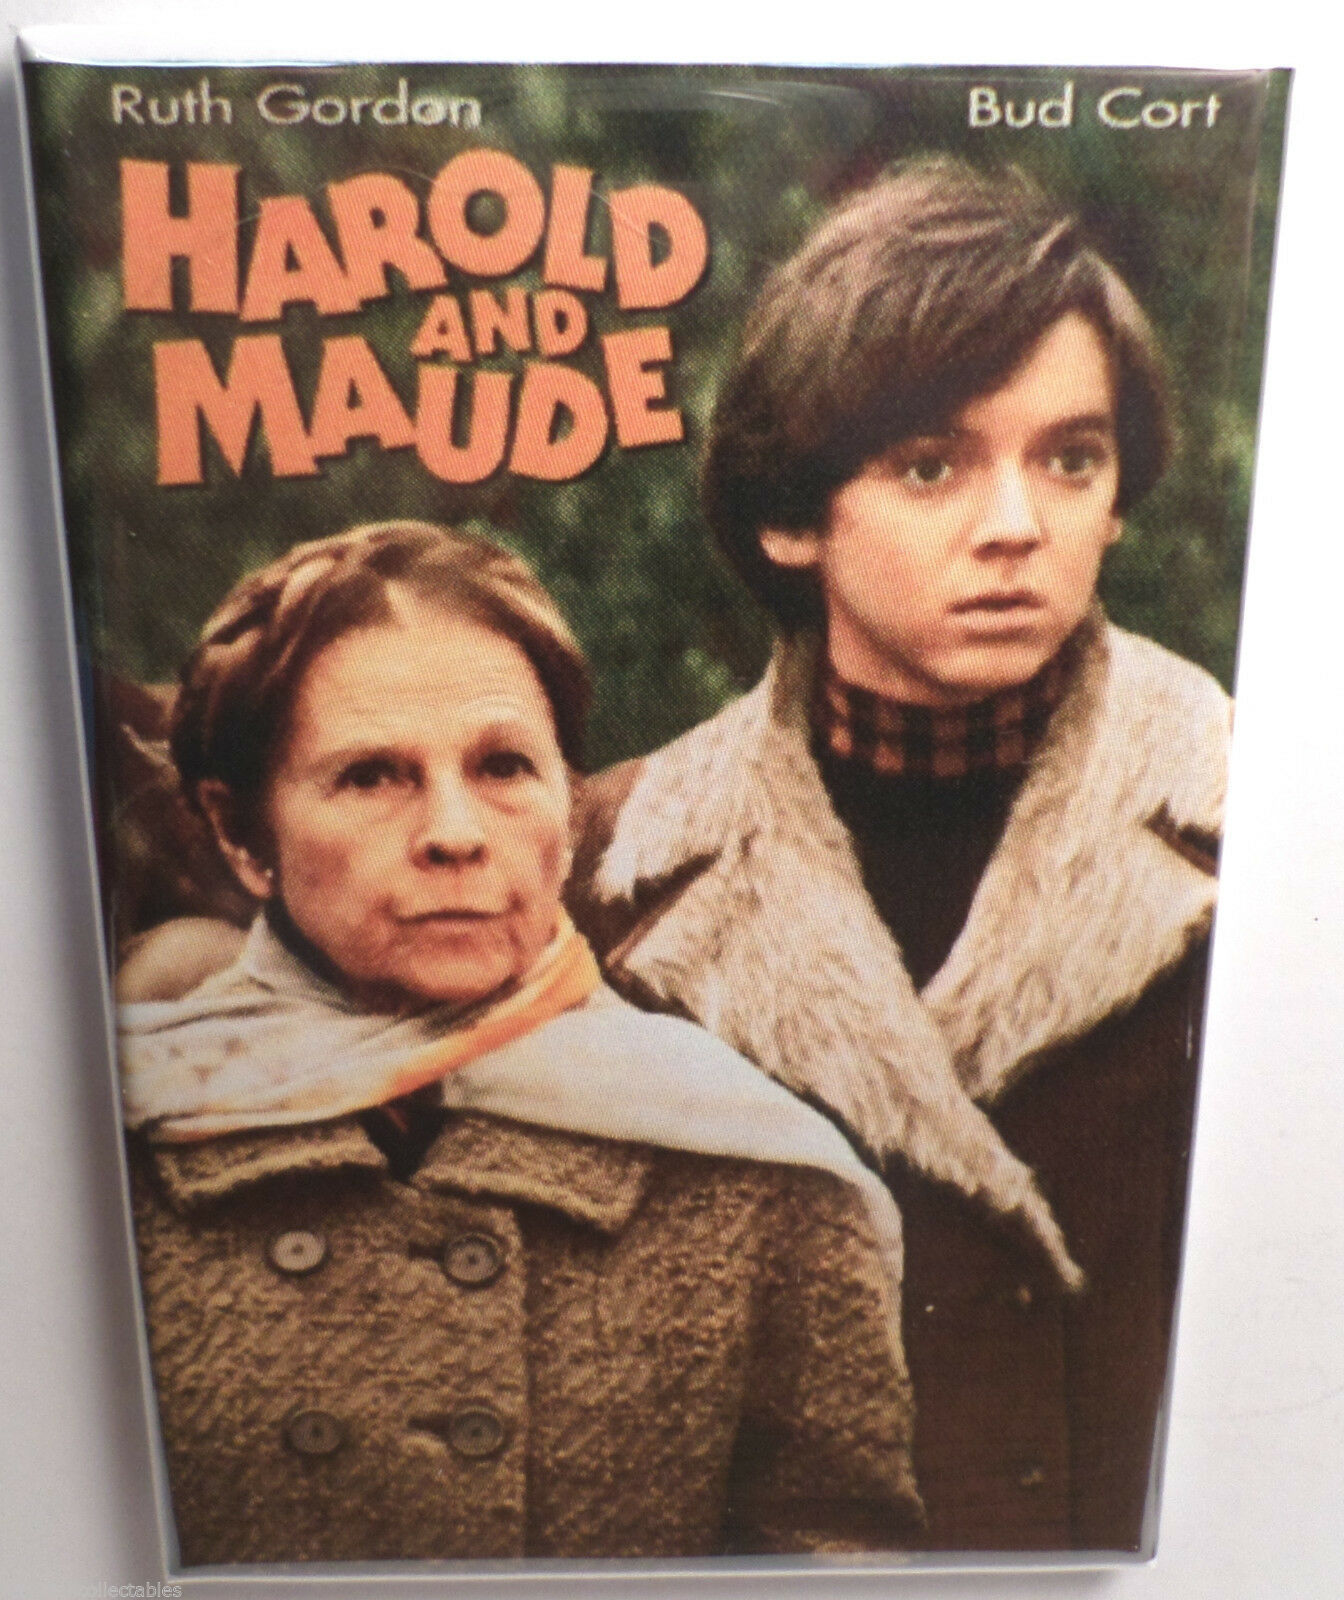 Harold and maude magnet 2x3